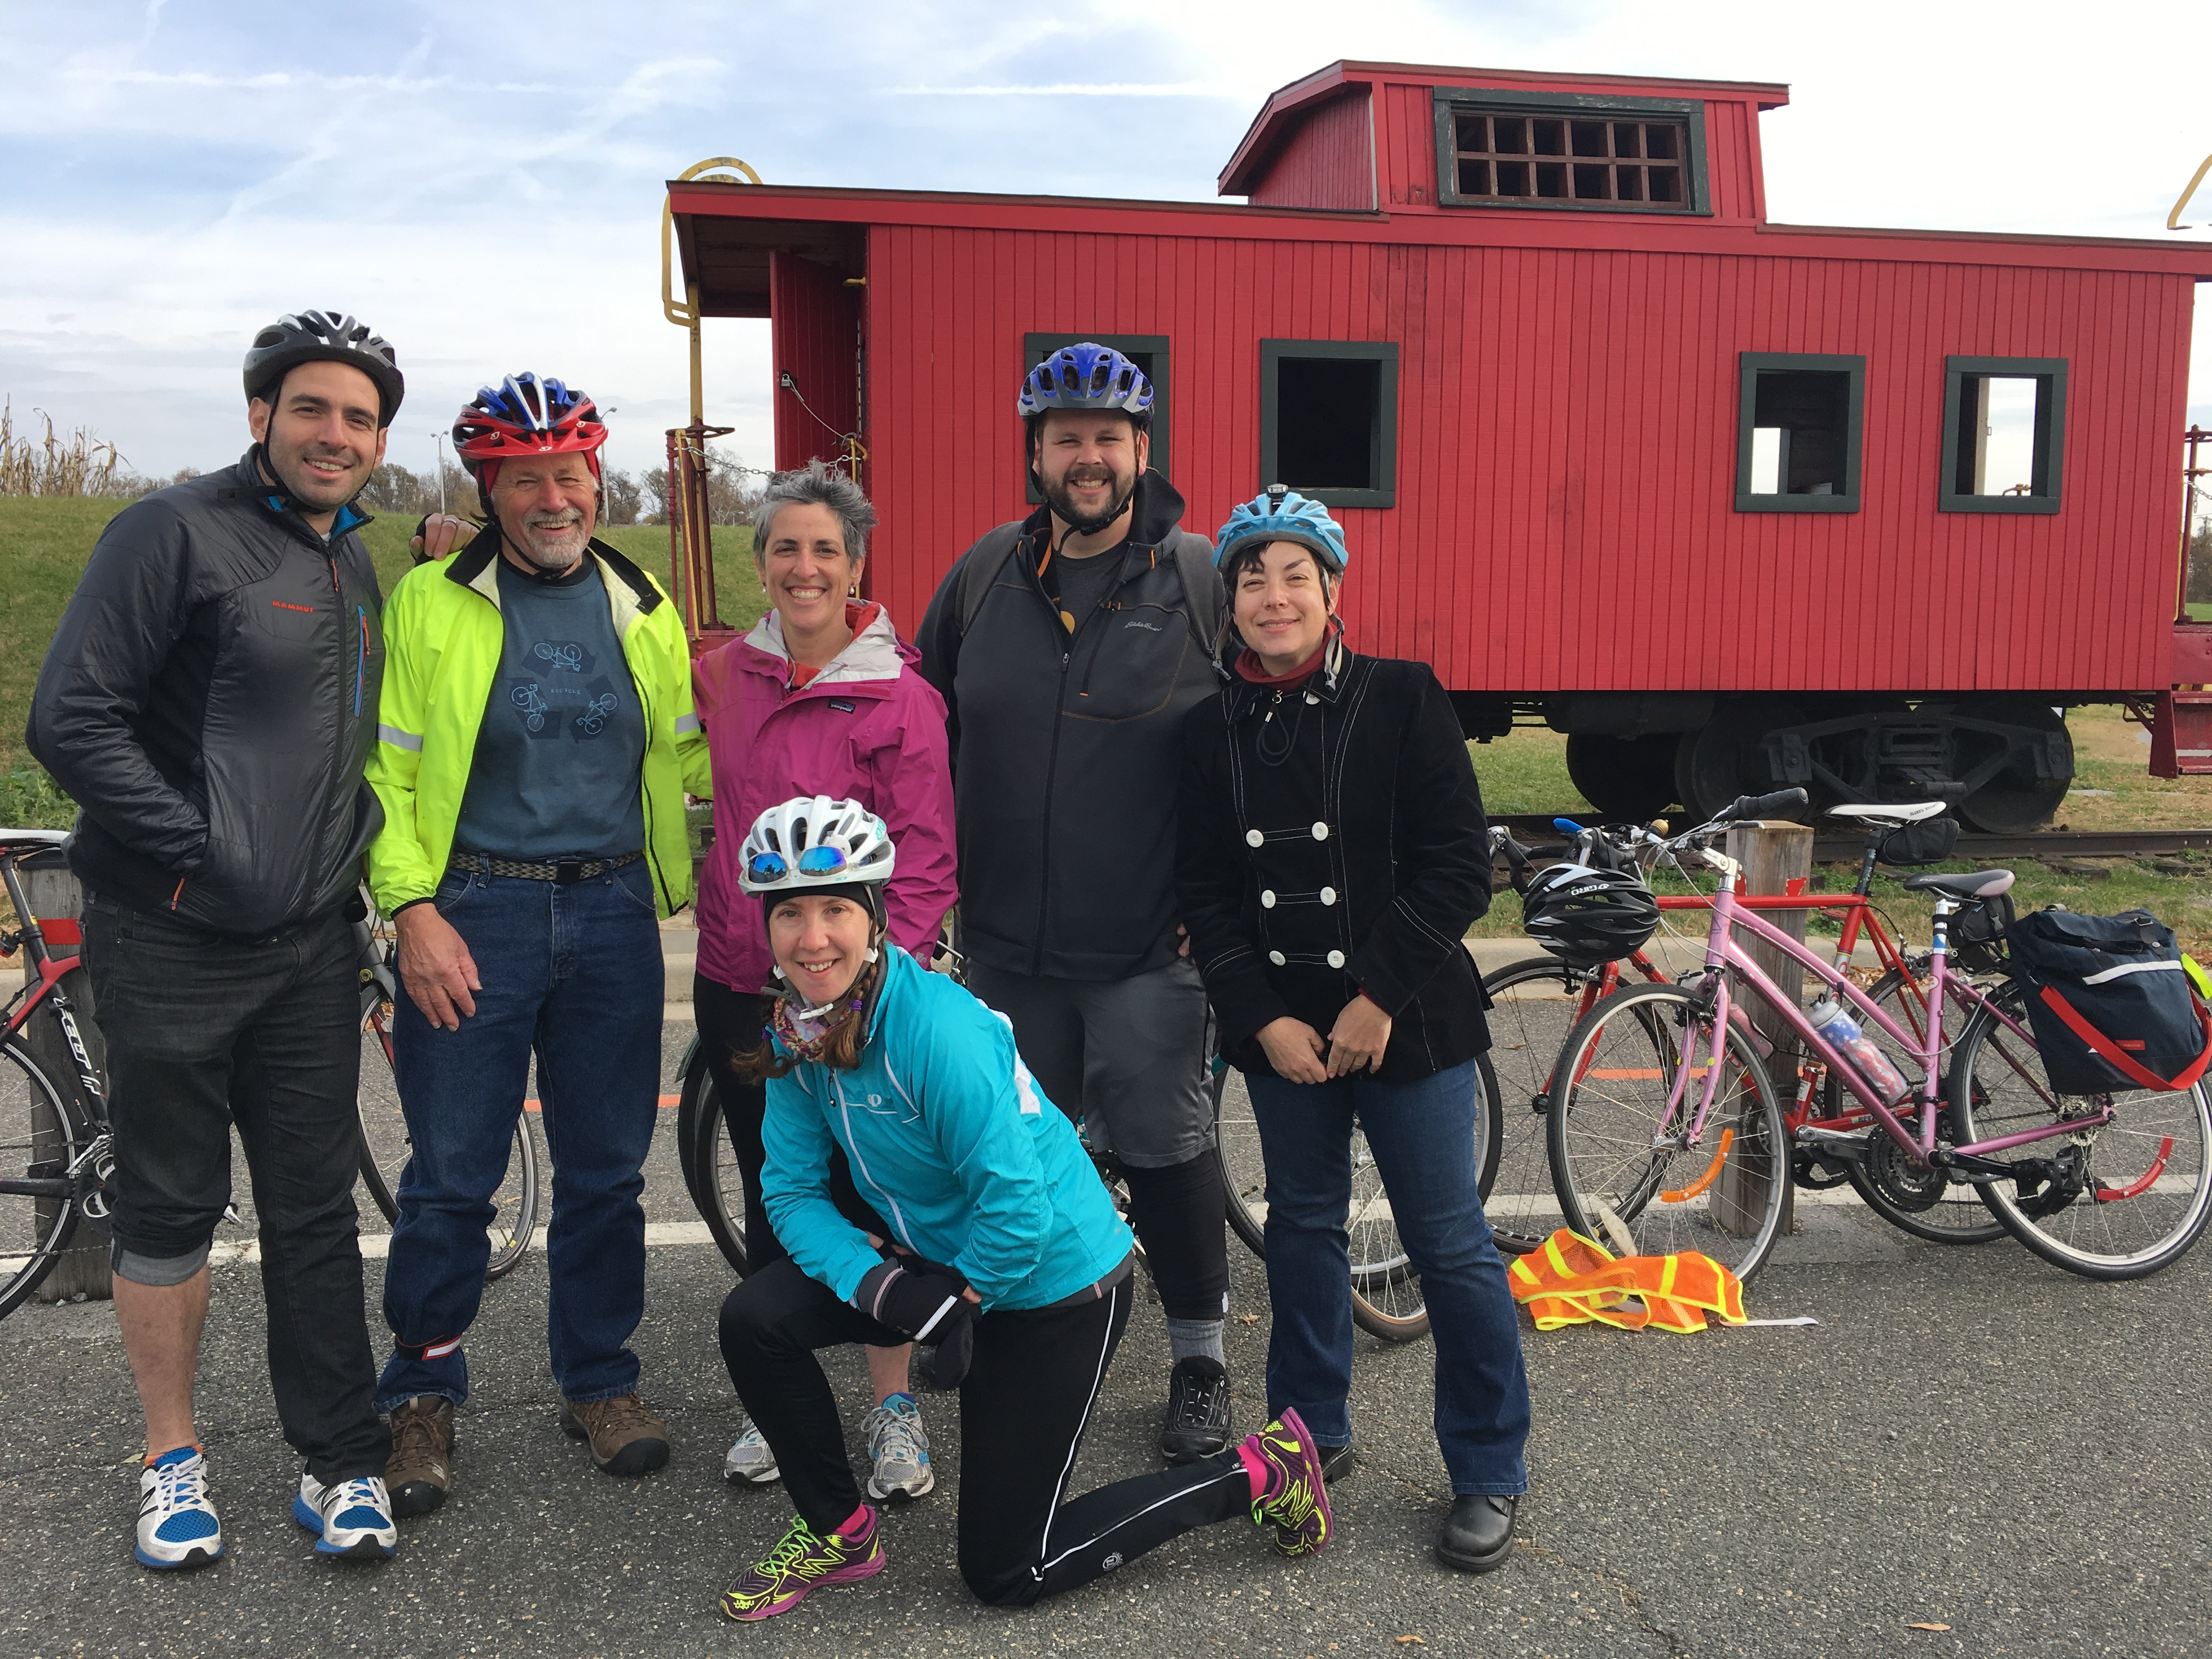 WABA_Bike_Ride_2017.JPG